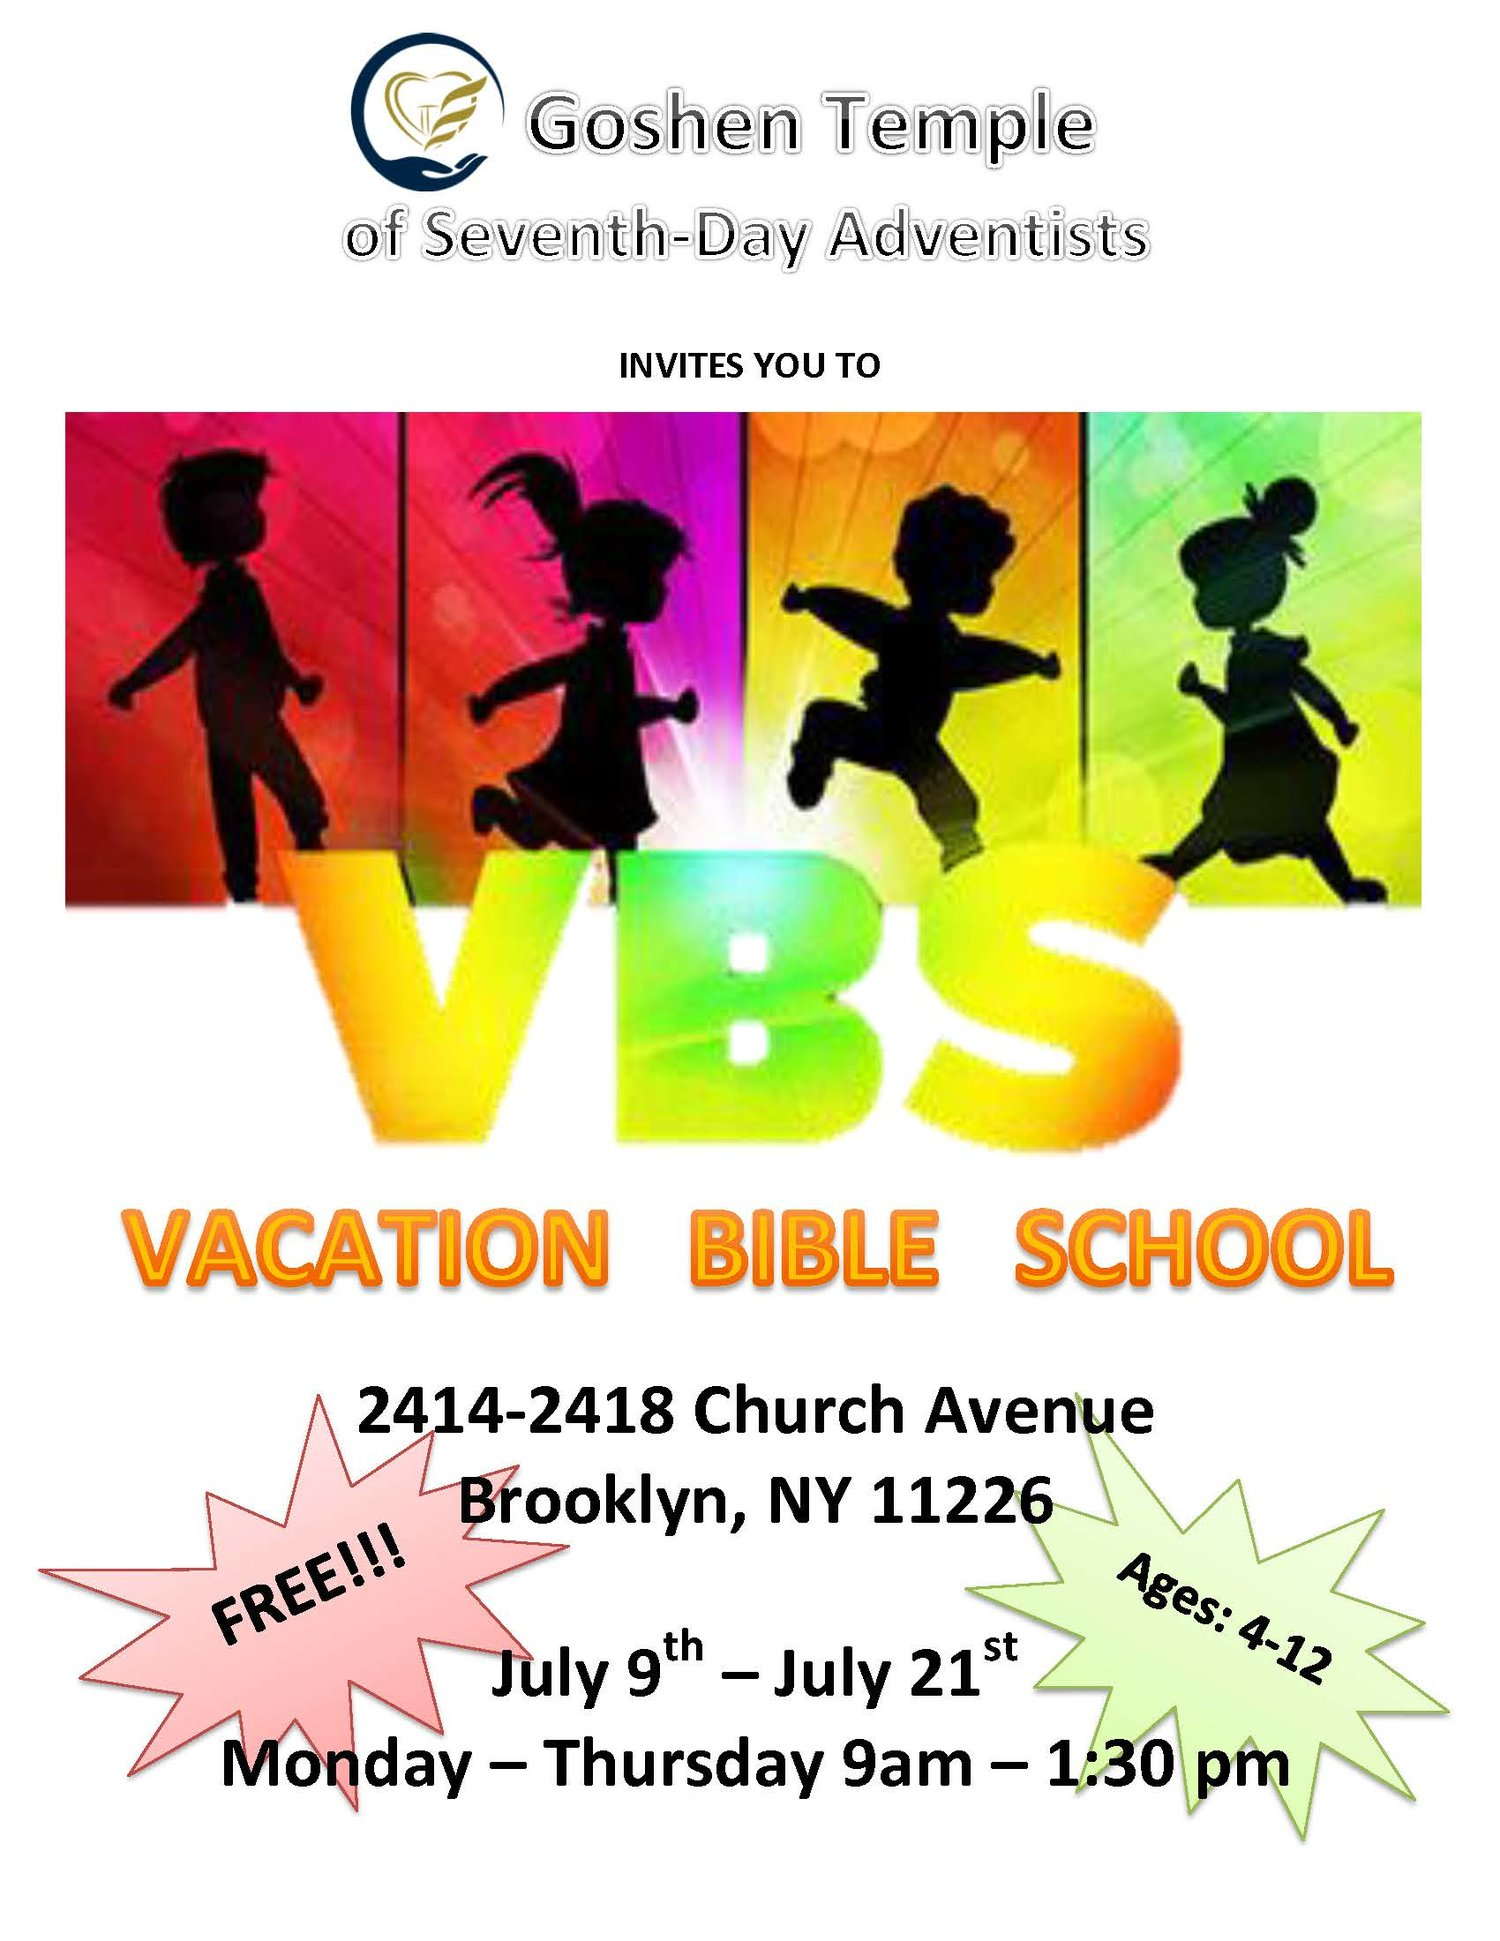 Vacation Bible School — Goshen Temple of Seventh-day Adventists